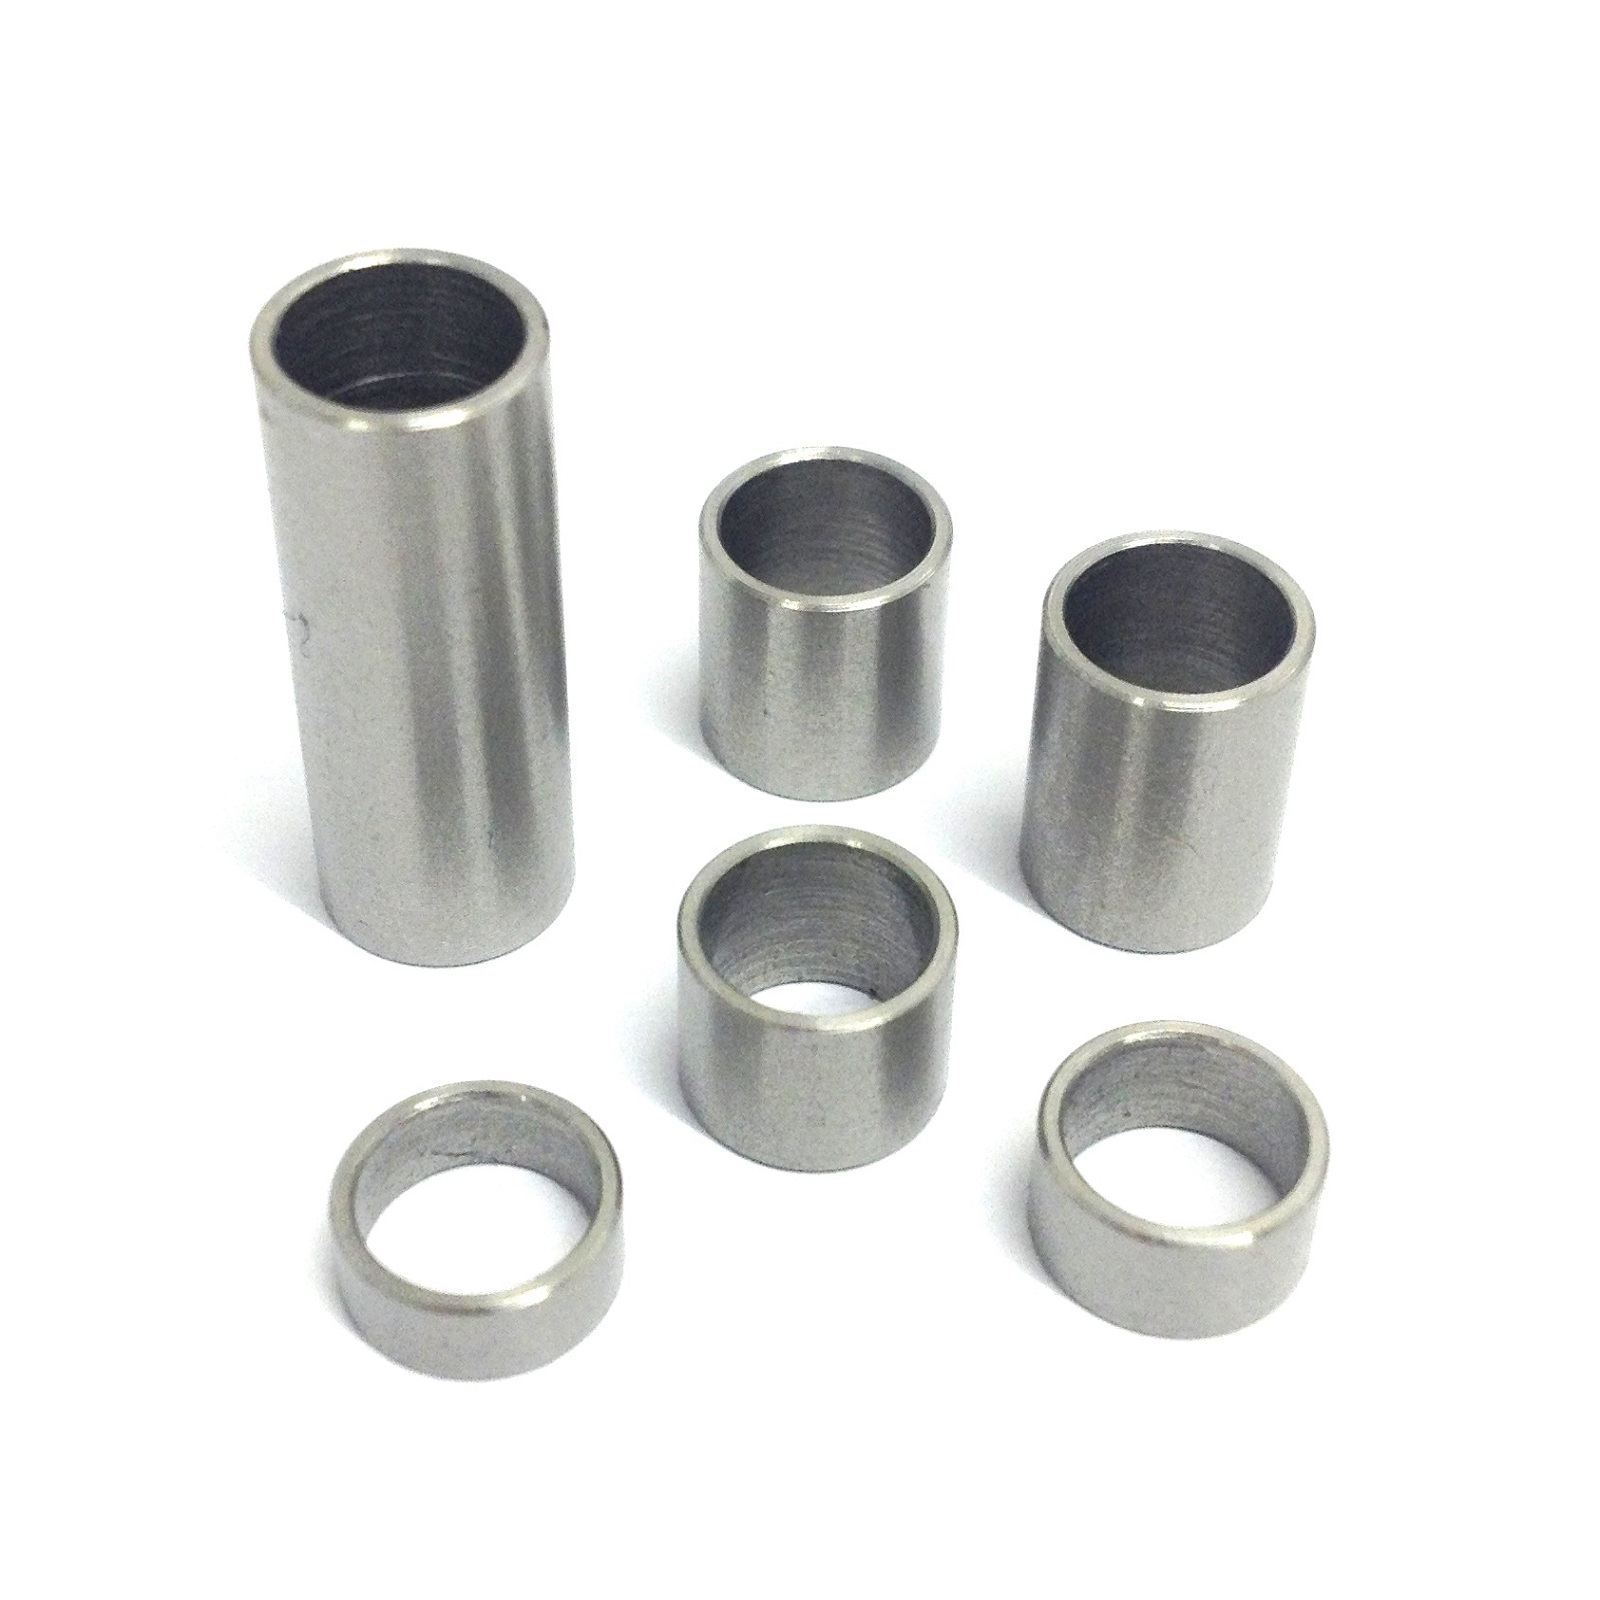 Round Spacers 3//16 Dia. 250 pcs 4 x 3//16 Stainless Steel Spacers and Standoffs